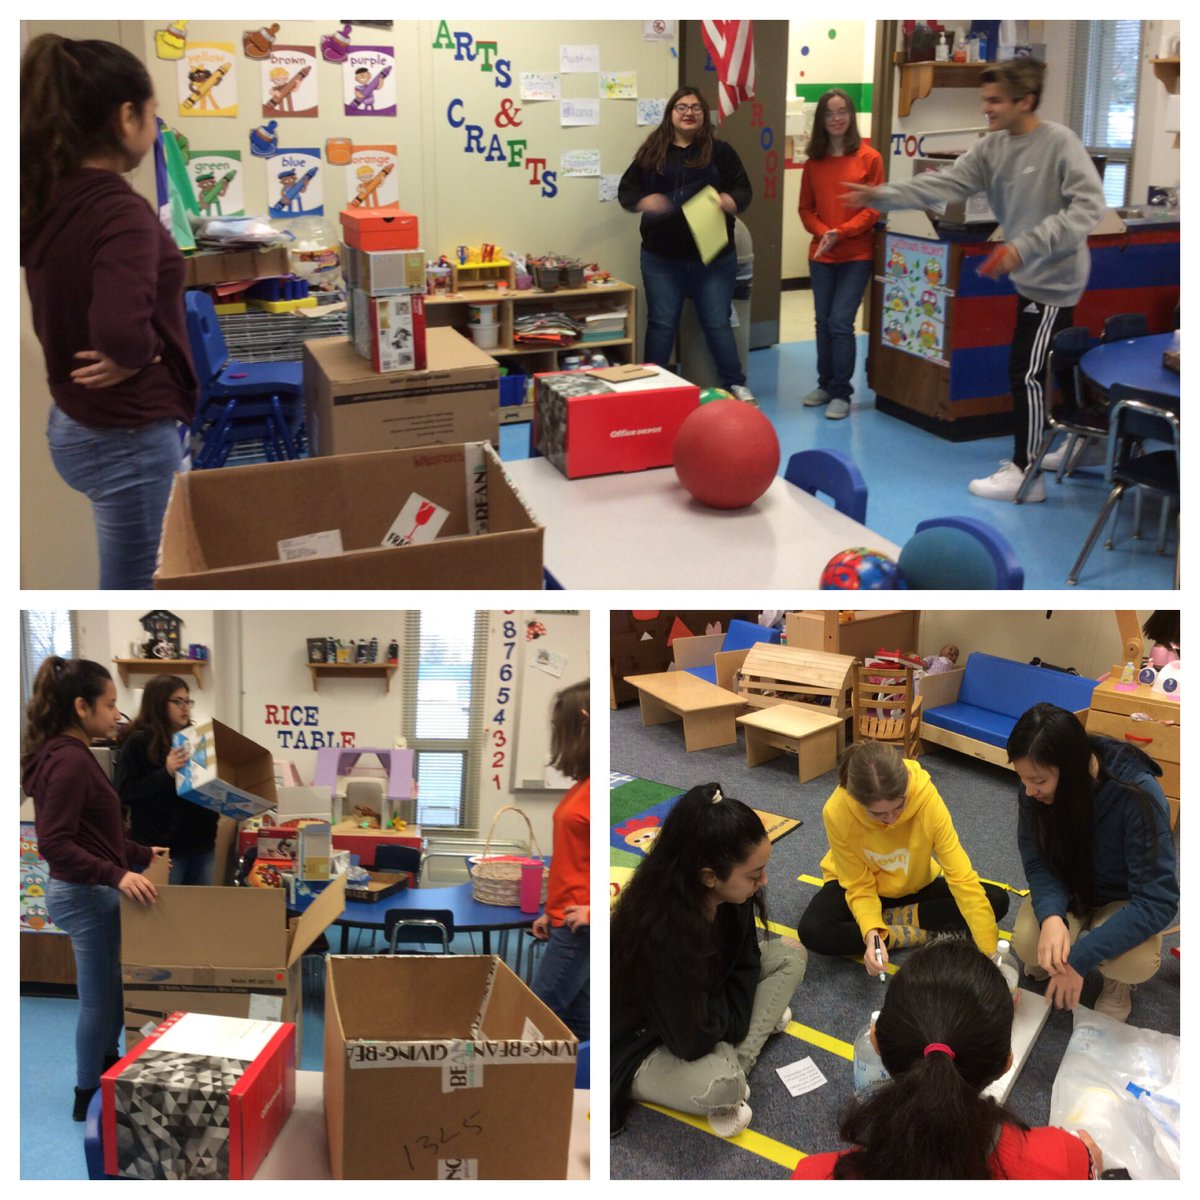 Starting off the new year with an activity requiring teamwork and creativity. Using recycled items to create gross motor games.  Lots of fun! <a target='_blank' href='https://t.co/n0VE8PpTOh'>https://t.co/n0VE8PpTOh</a>